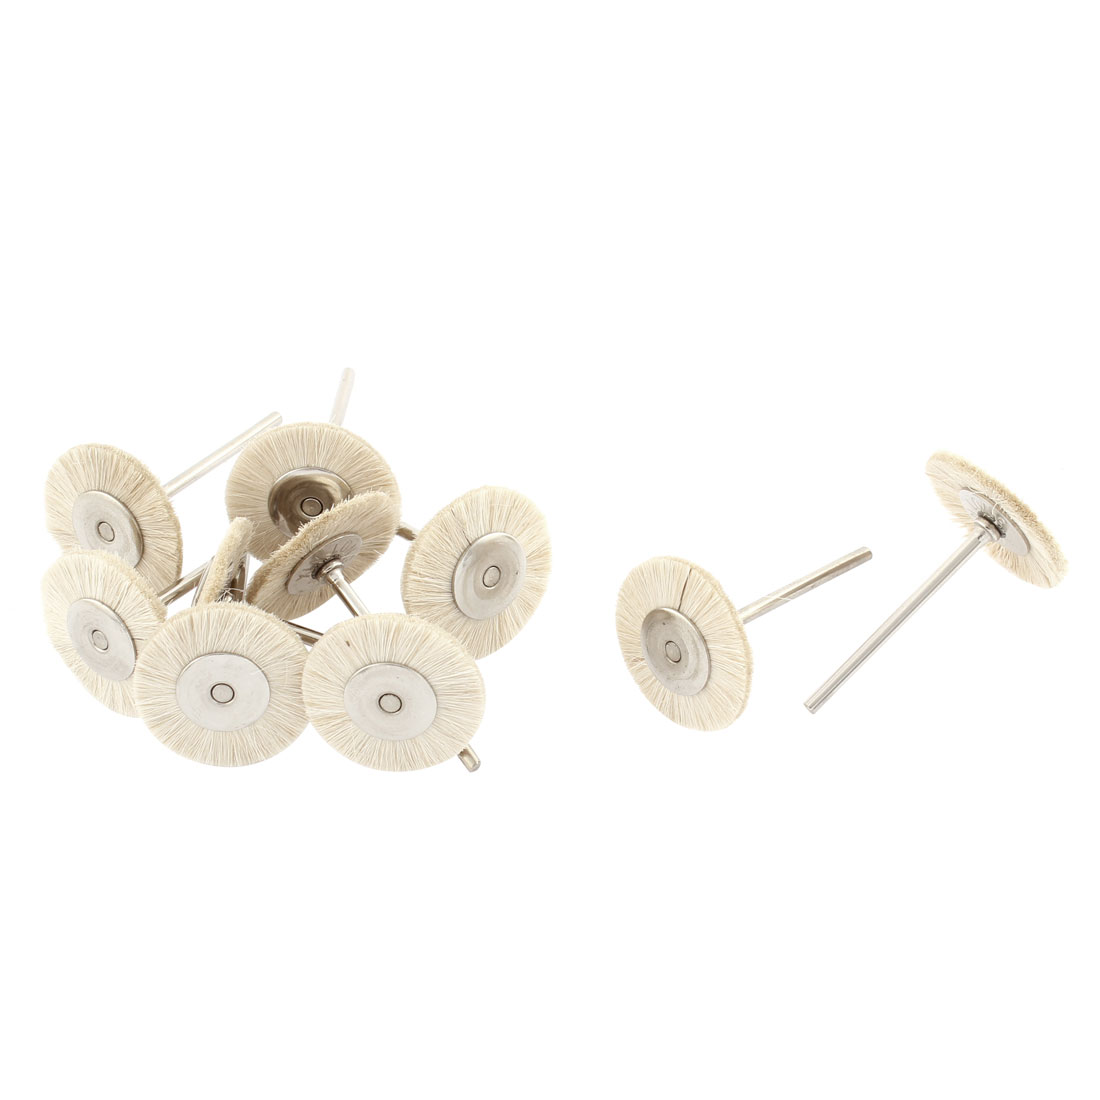 Rotary Tool Jewelry Buffing Cleaning Mop 25mm Nylon Head Polishing Wheels 10pcs